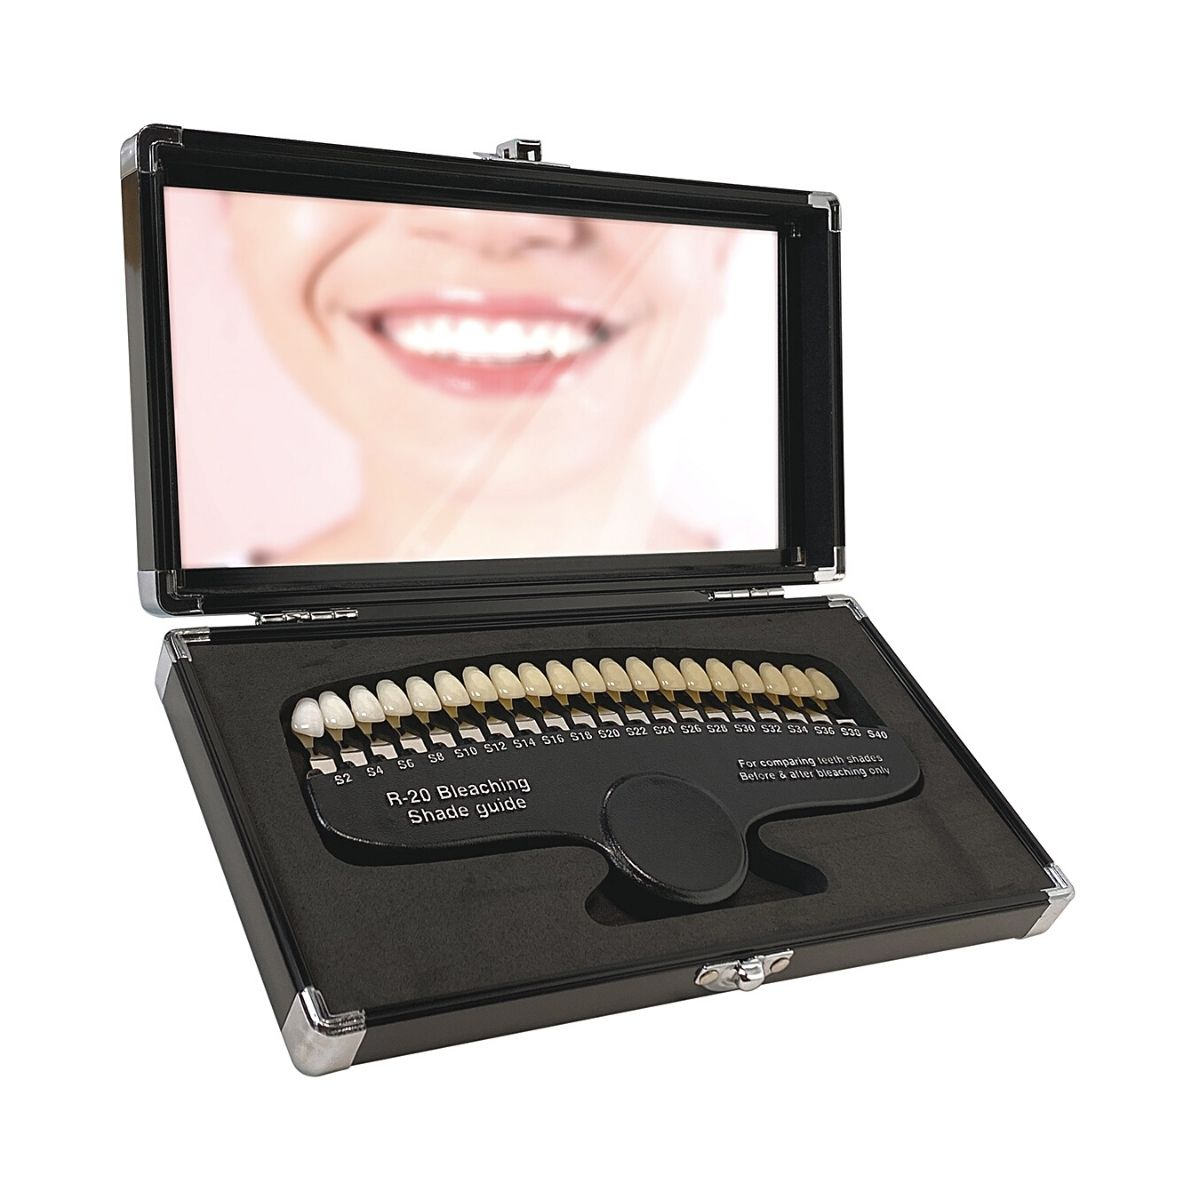 r-20 tooth shade guide in open case with mirror